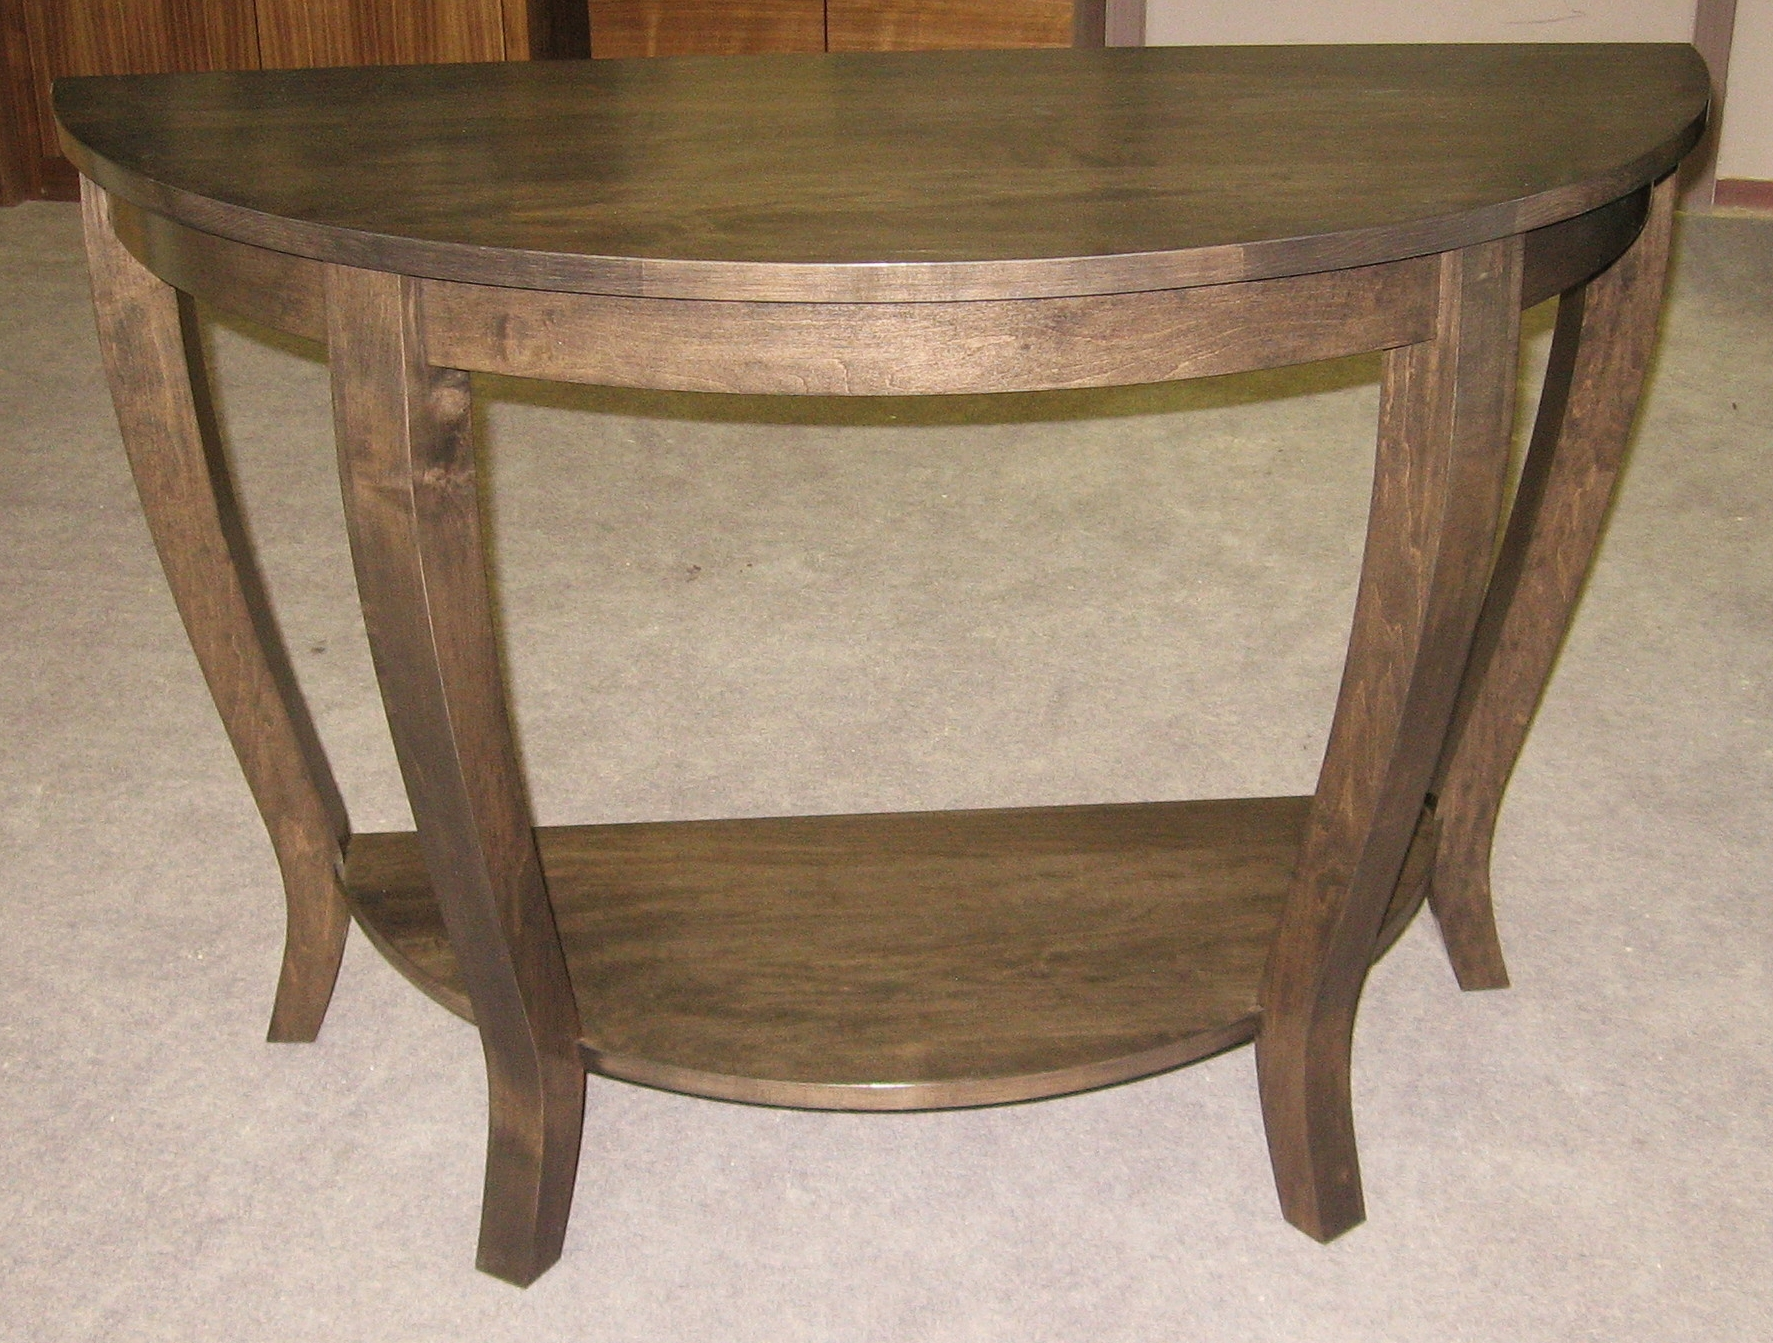 curved-leg-demi-moon-hall-table.JPG